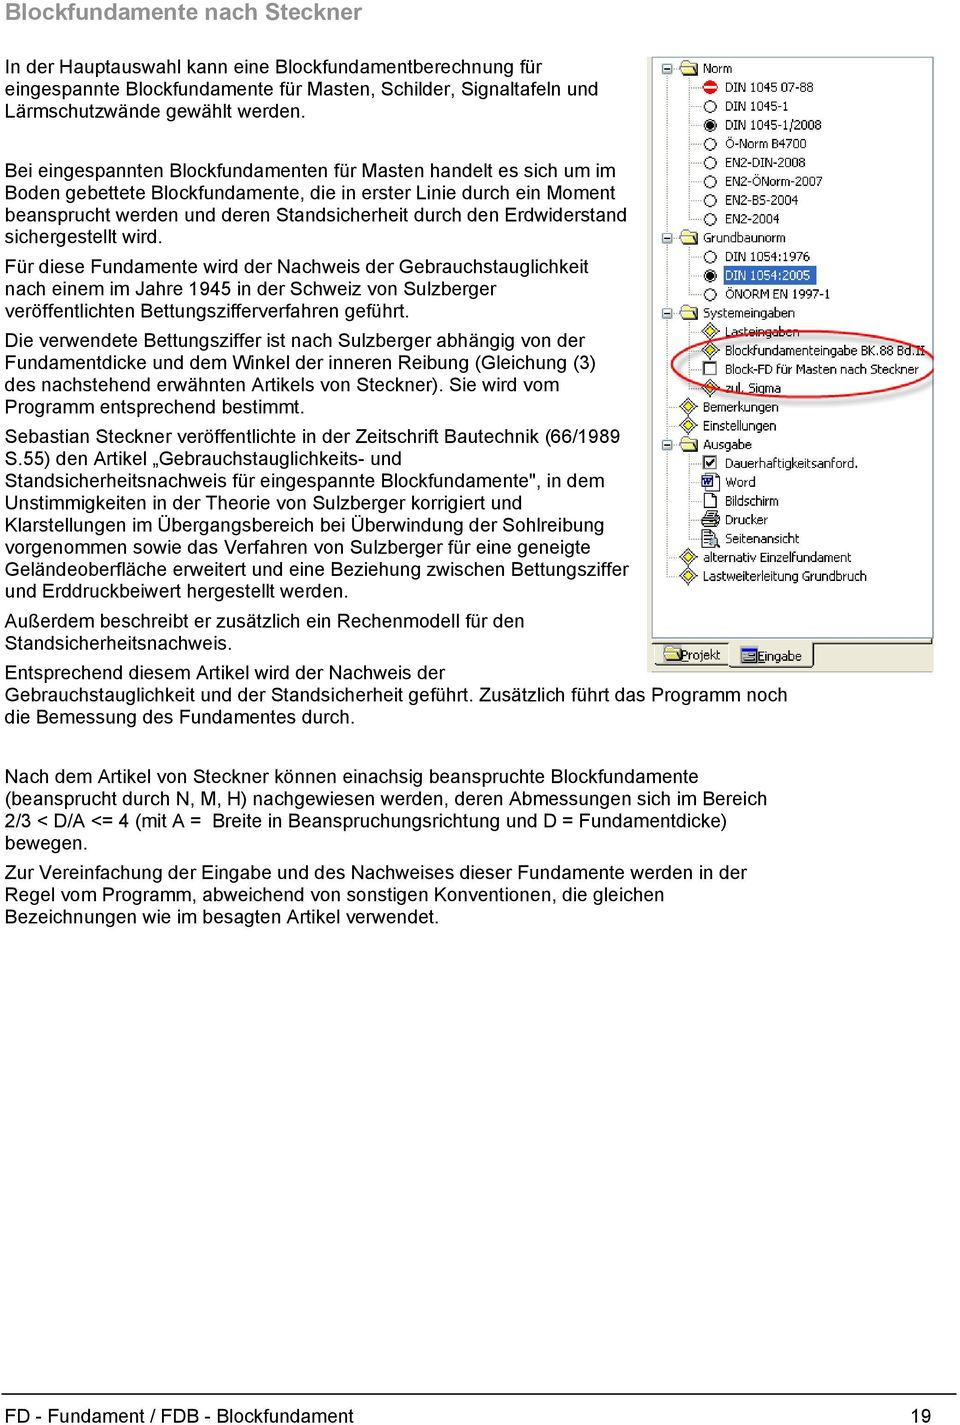 Fundament FD und Blockfundament FDB - PDF